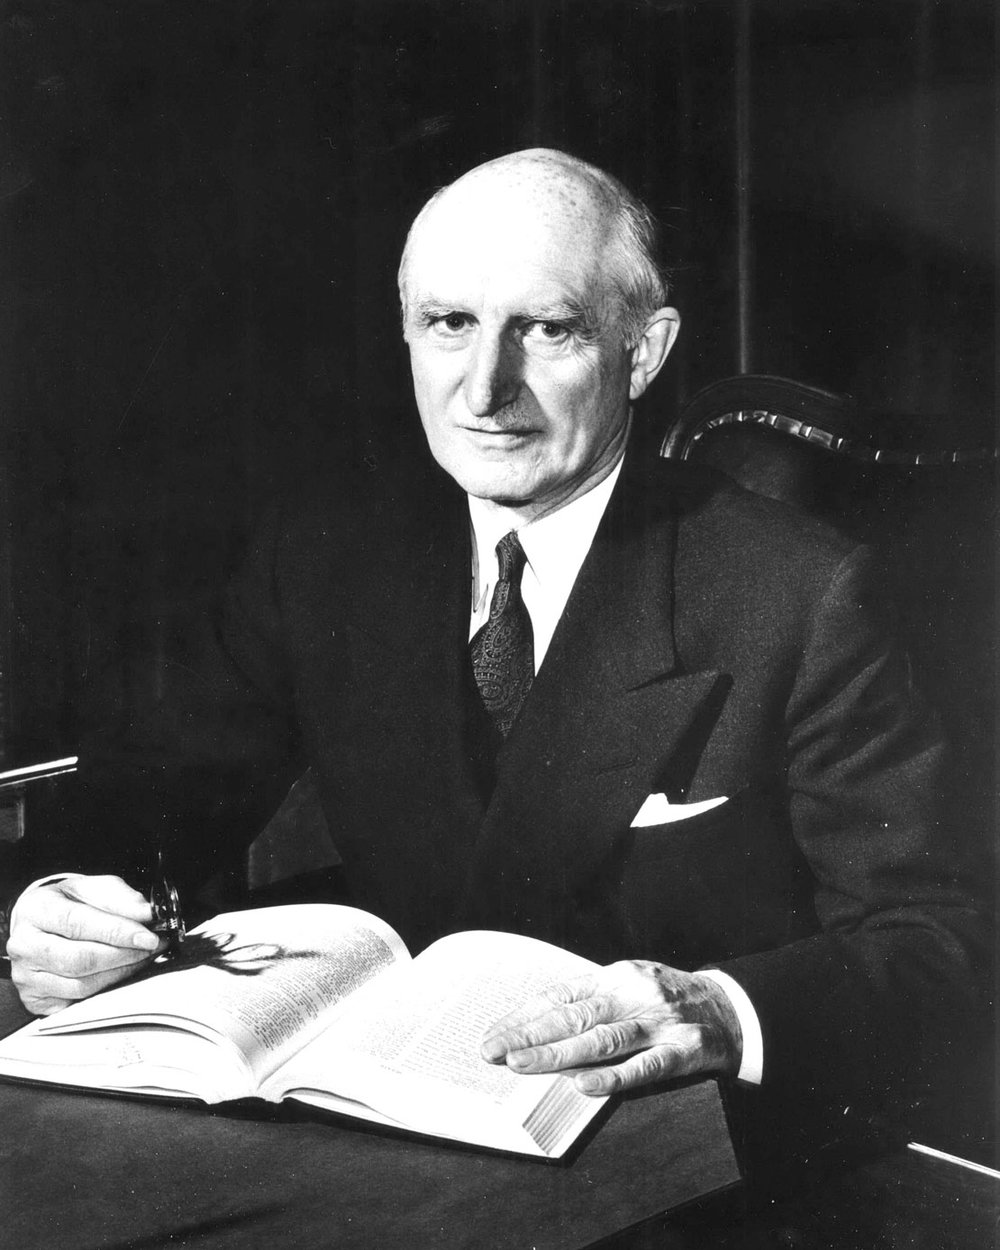 W Ross Macdonald - Macdonald served in the House of Commons from 1935 to 1953. He served in the Senate from 1953 until 1967. He was Speaker of the House of Commons from 1949 to 1953. Macdonald was leader of the government in the Senate from 1953 to 1957 and 1963 to 1964. He was leader of the opposition in the Senate from 1957 until 1963. Macdonald served as Ontario's 21st Lieutenant Governor from 1968 to 1974.  Image courtesy of the Brant Historical Society